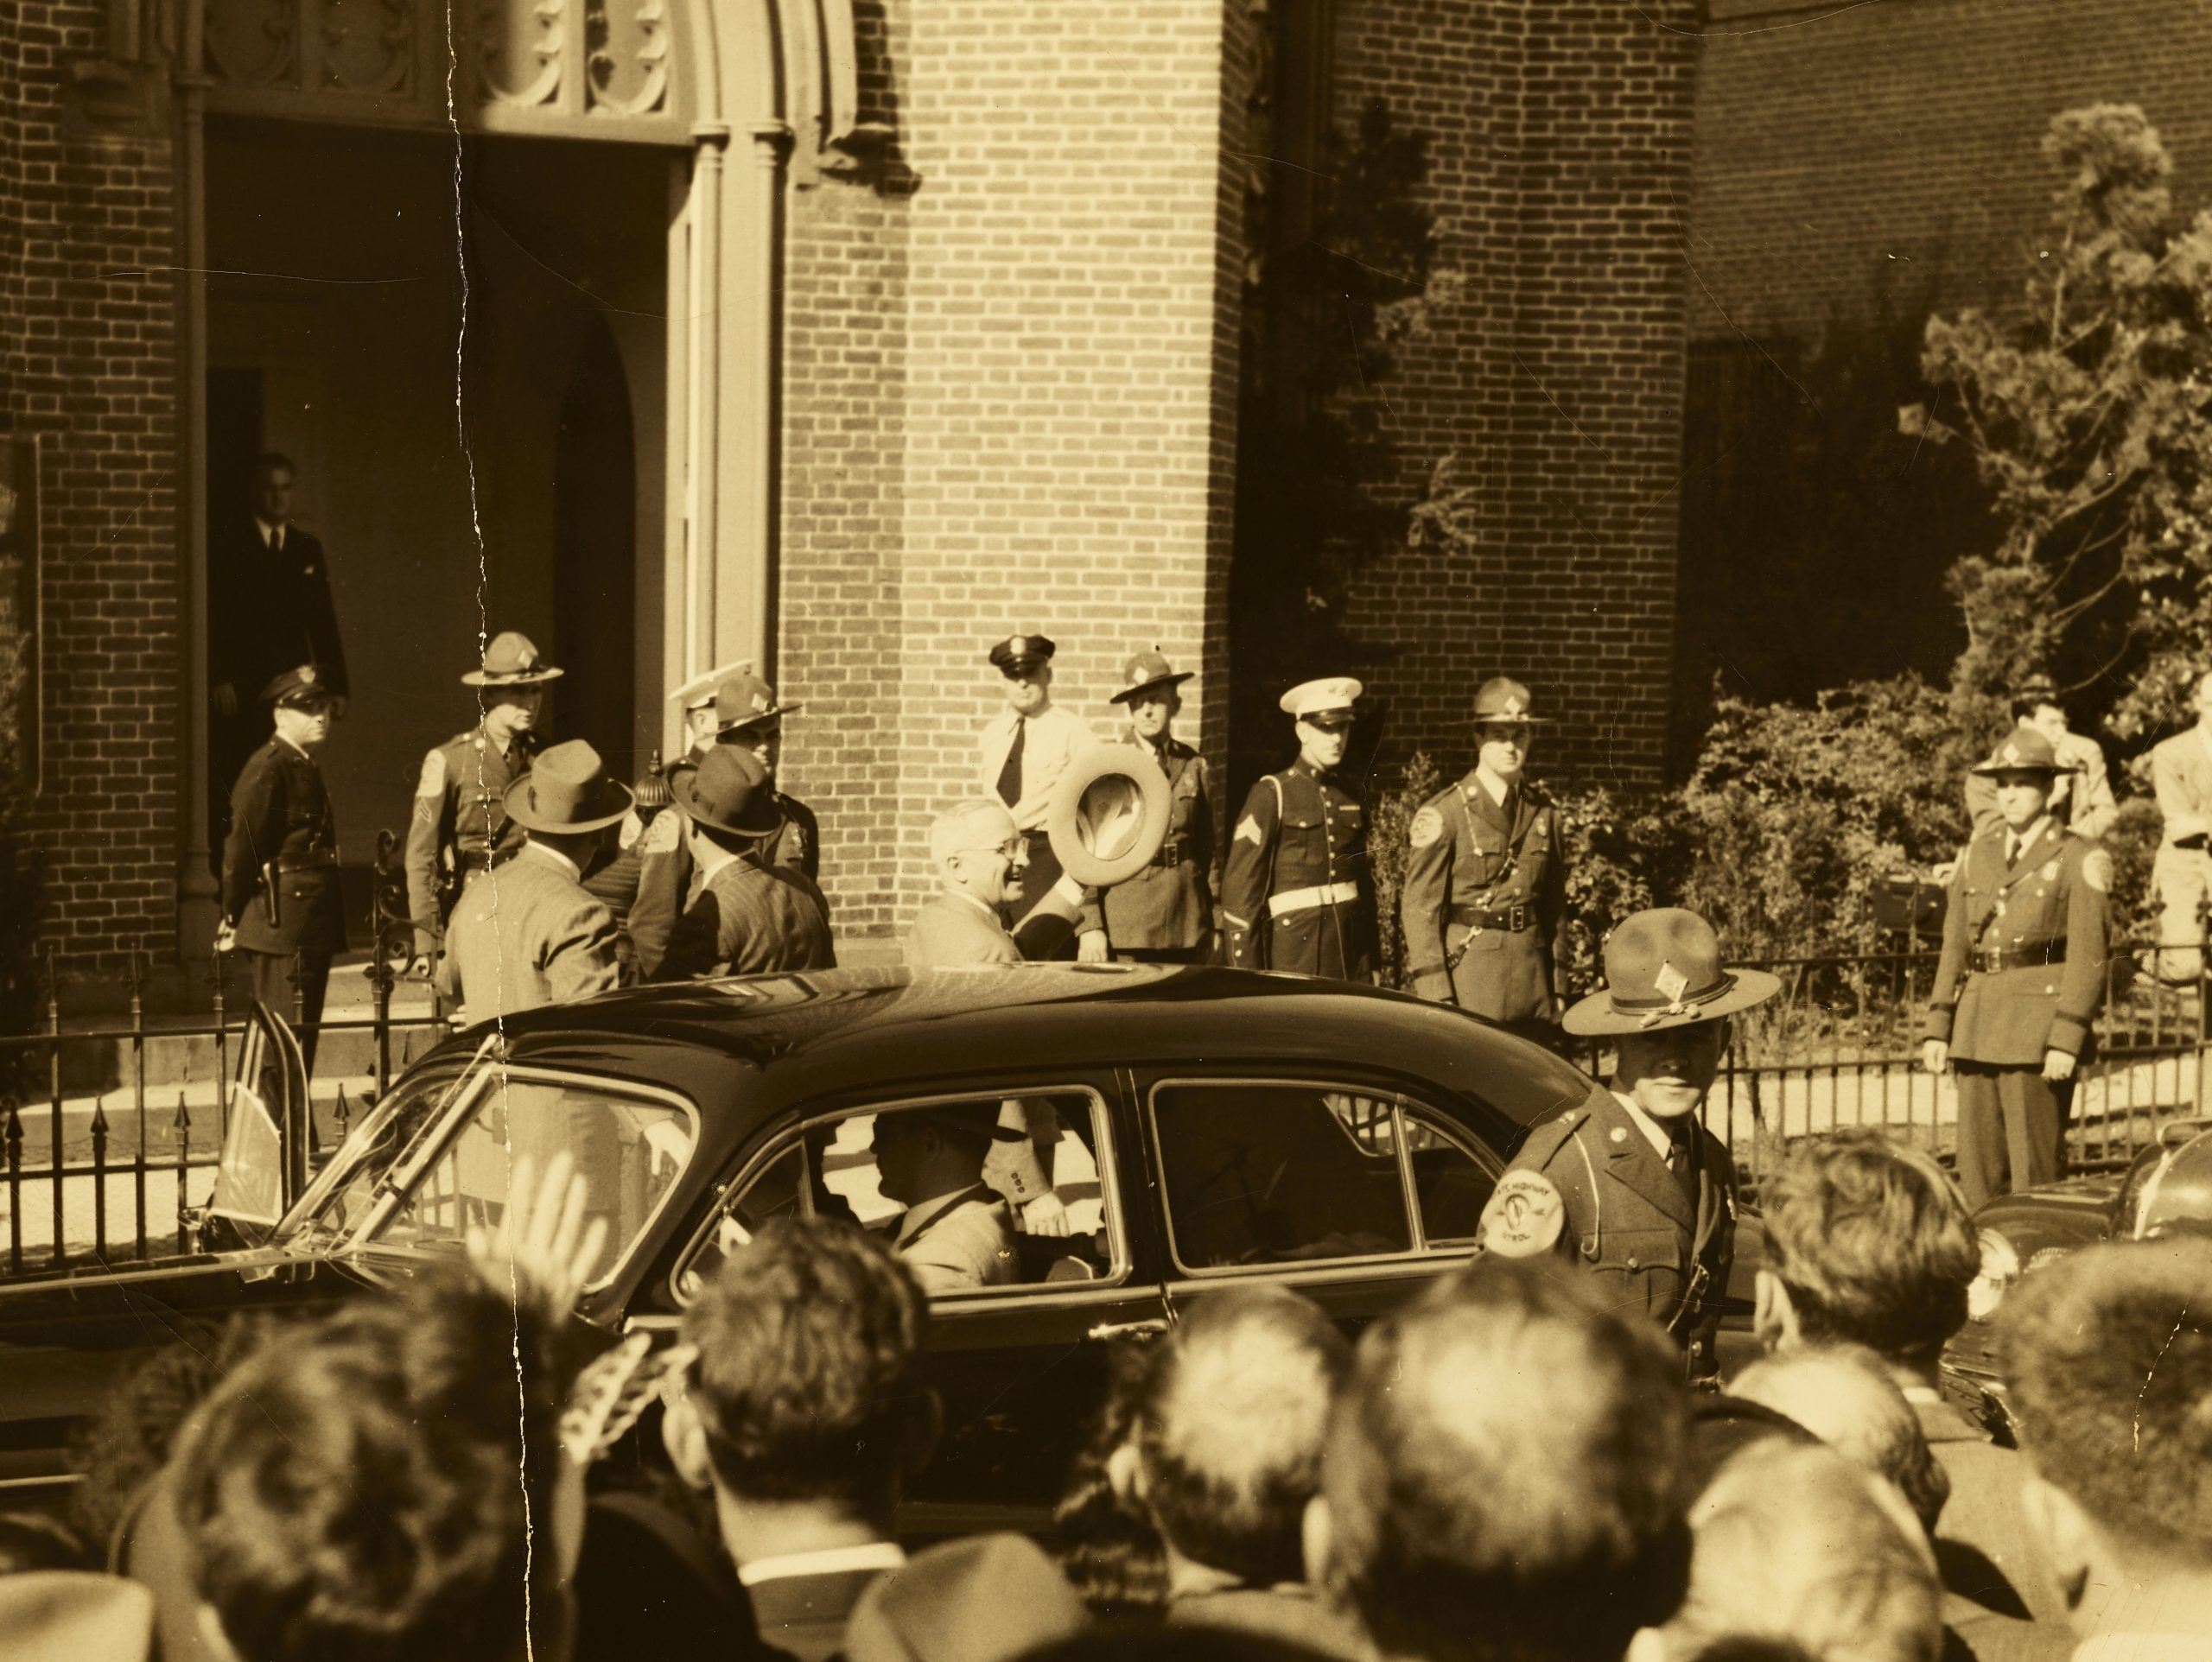 Picture of Harry Truman leaving the First Baptist Church. He is holding his hat in the air about to get into a car. There is a crowd of people around the car.